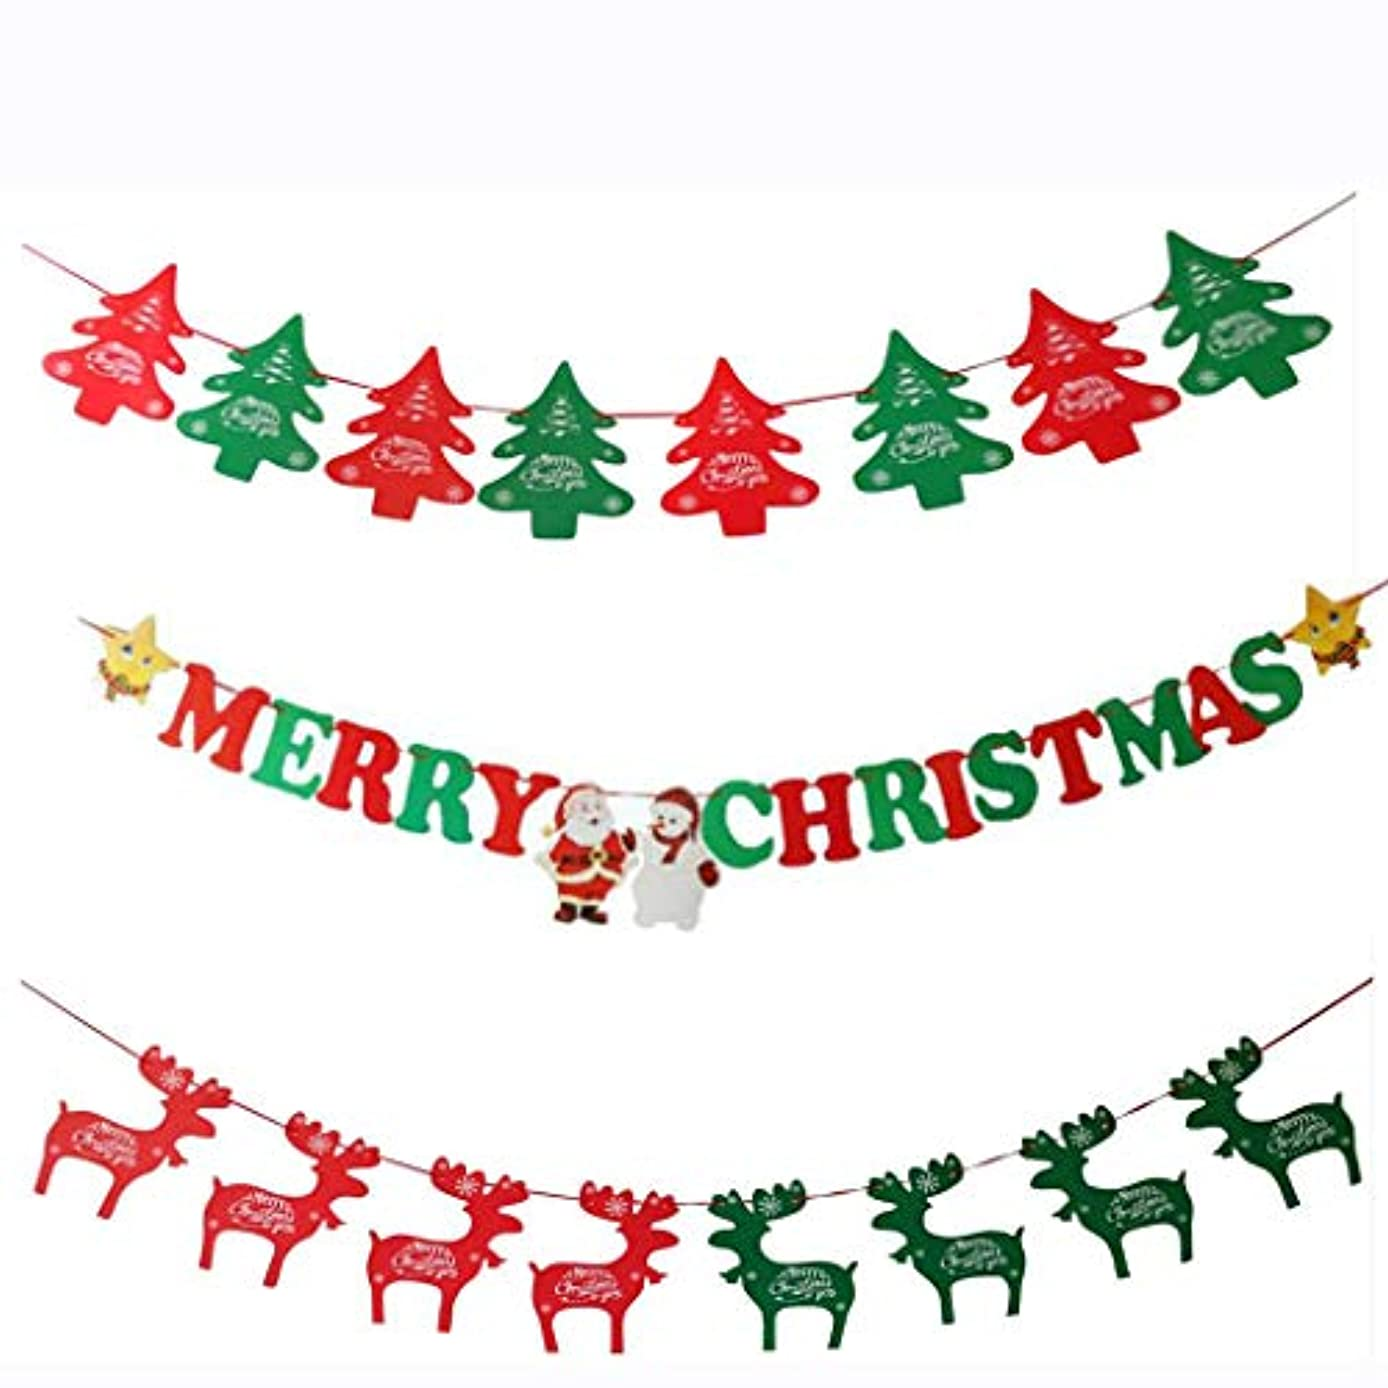 Merry Christmas Banner Chrismas Party Decorations Clearance Xmas Tree Deer Pennant Banners